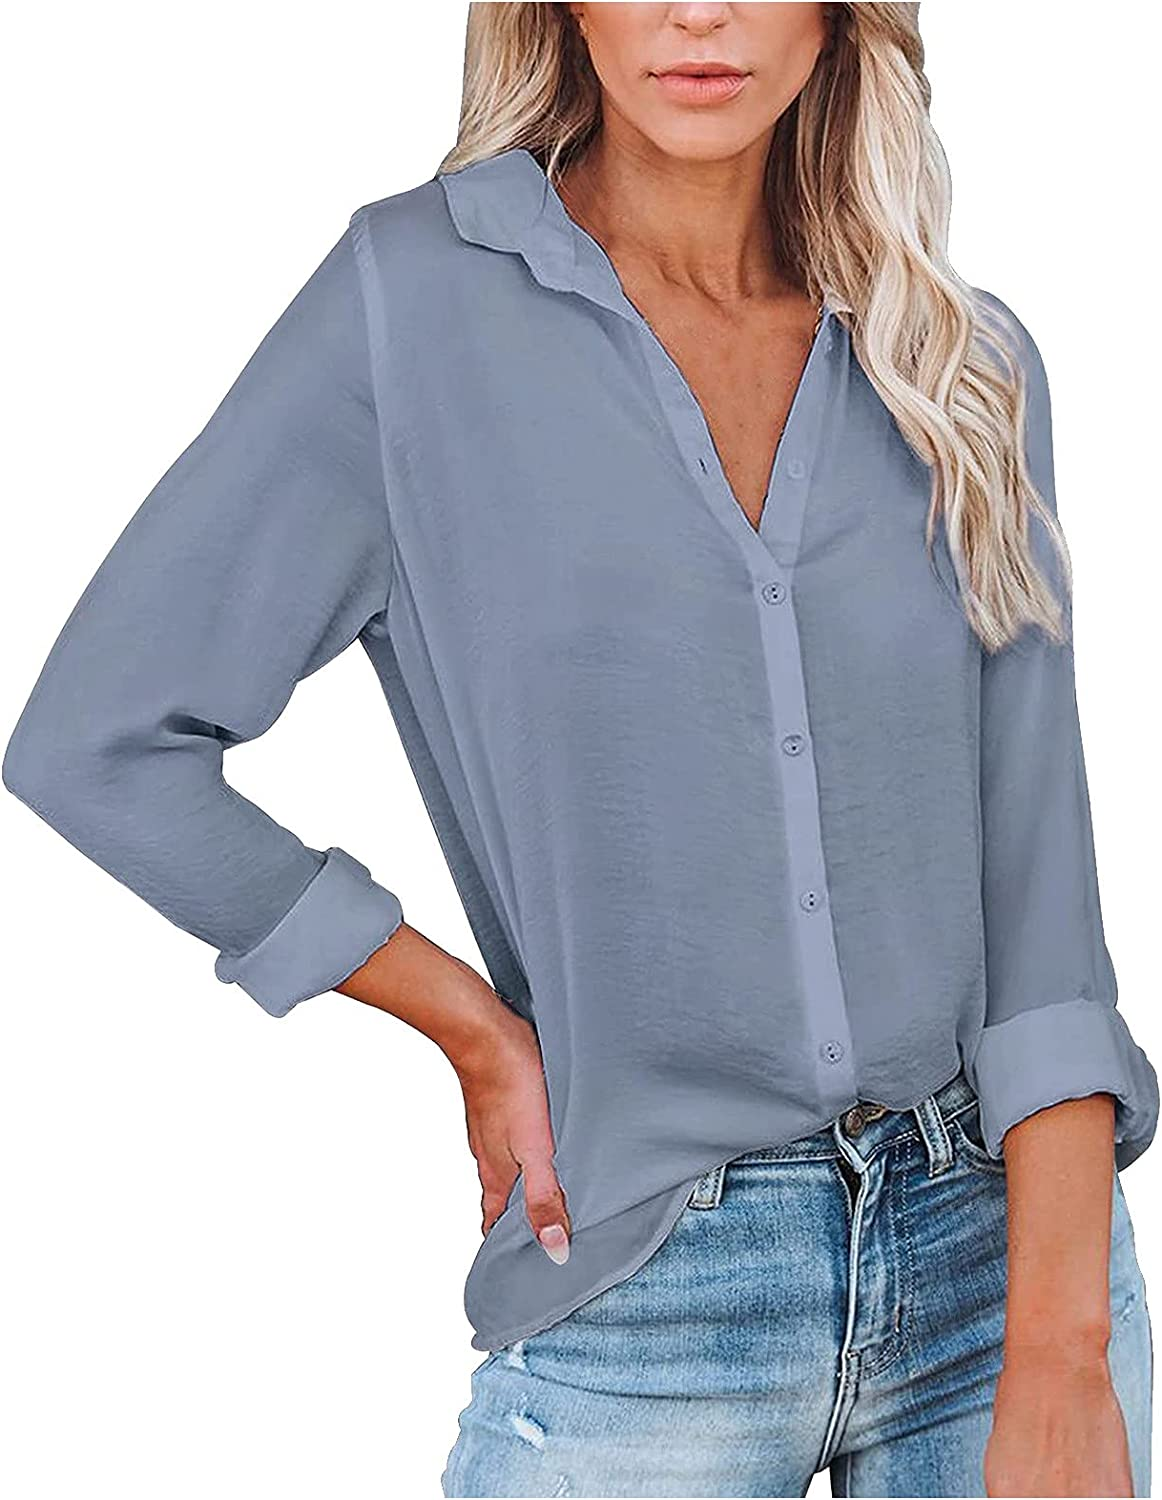 Women's Solid Color Button Loose Strip Printing Tops V Neck Out Long Sleeve Shirts Hoodie Pullover Sweatshirts